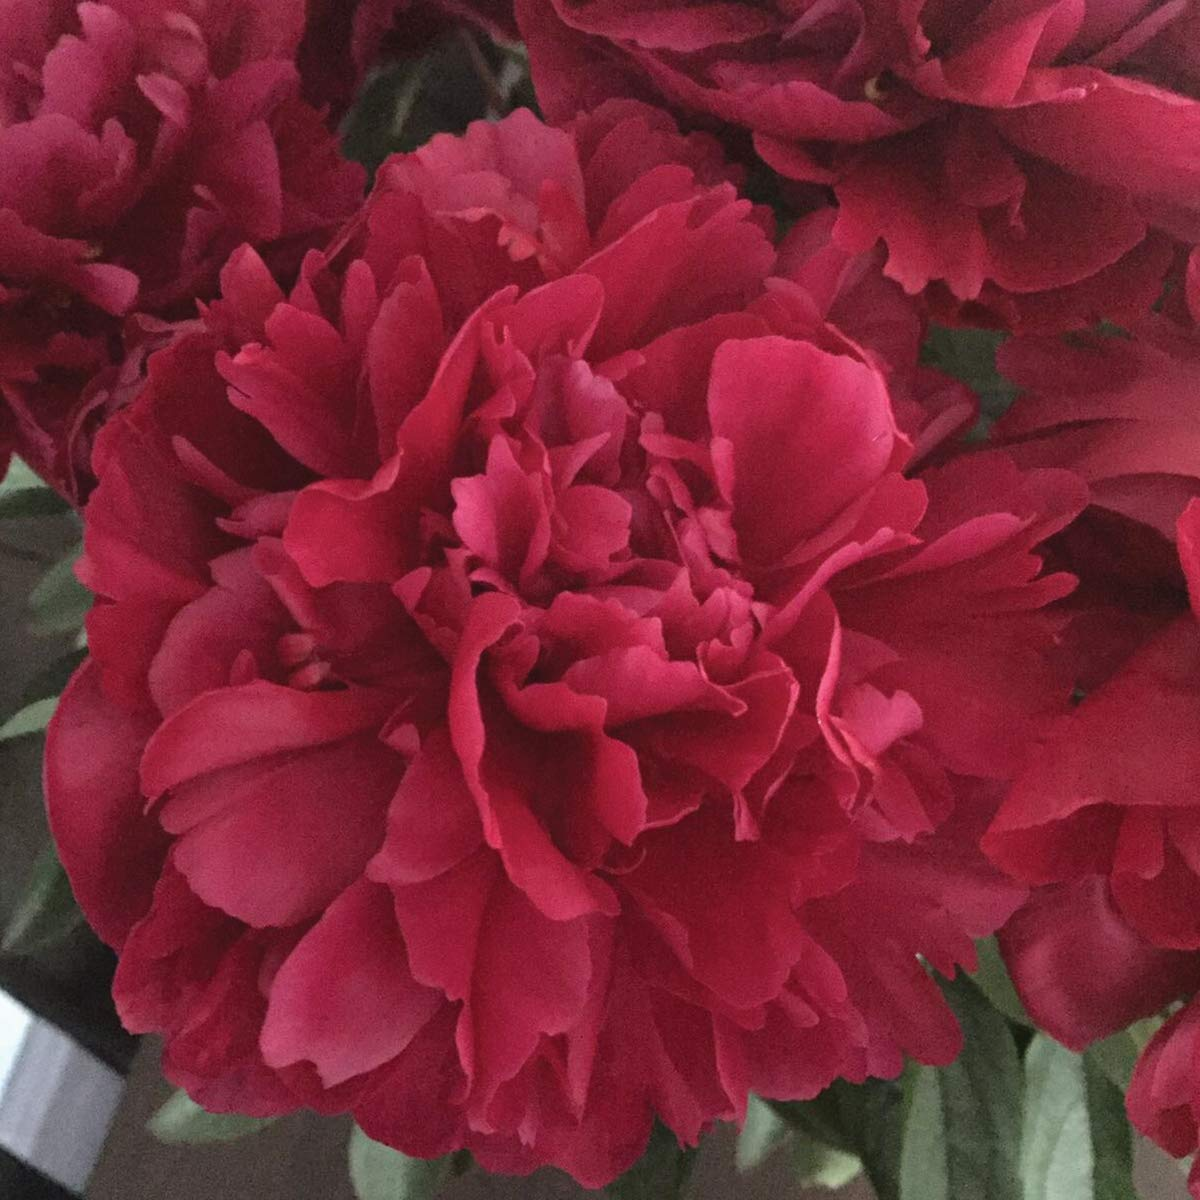 Burpee Perennial Peony 'Lady in Red' - 1 Bare Root Plant